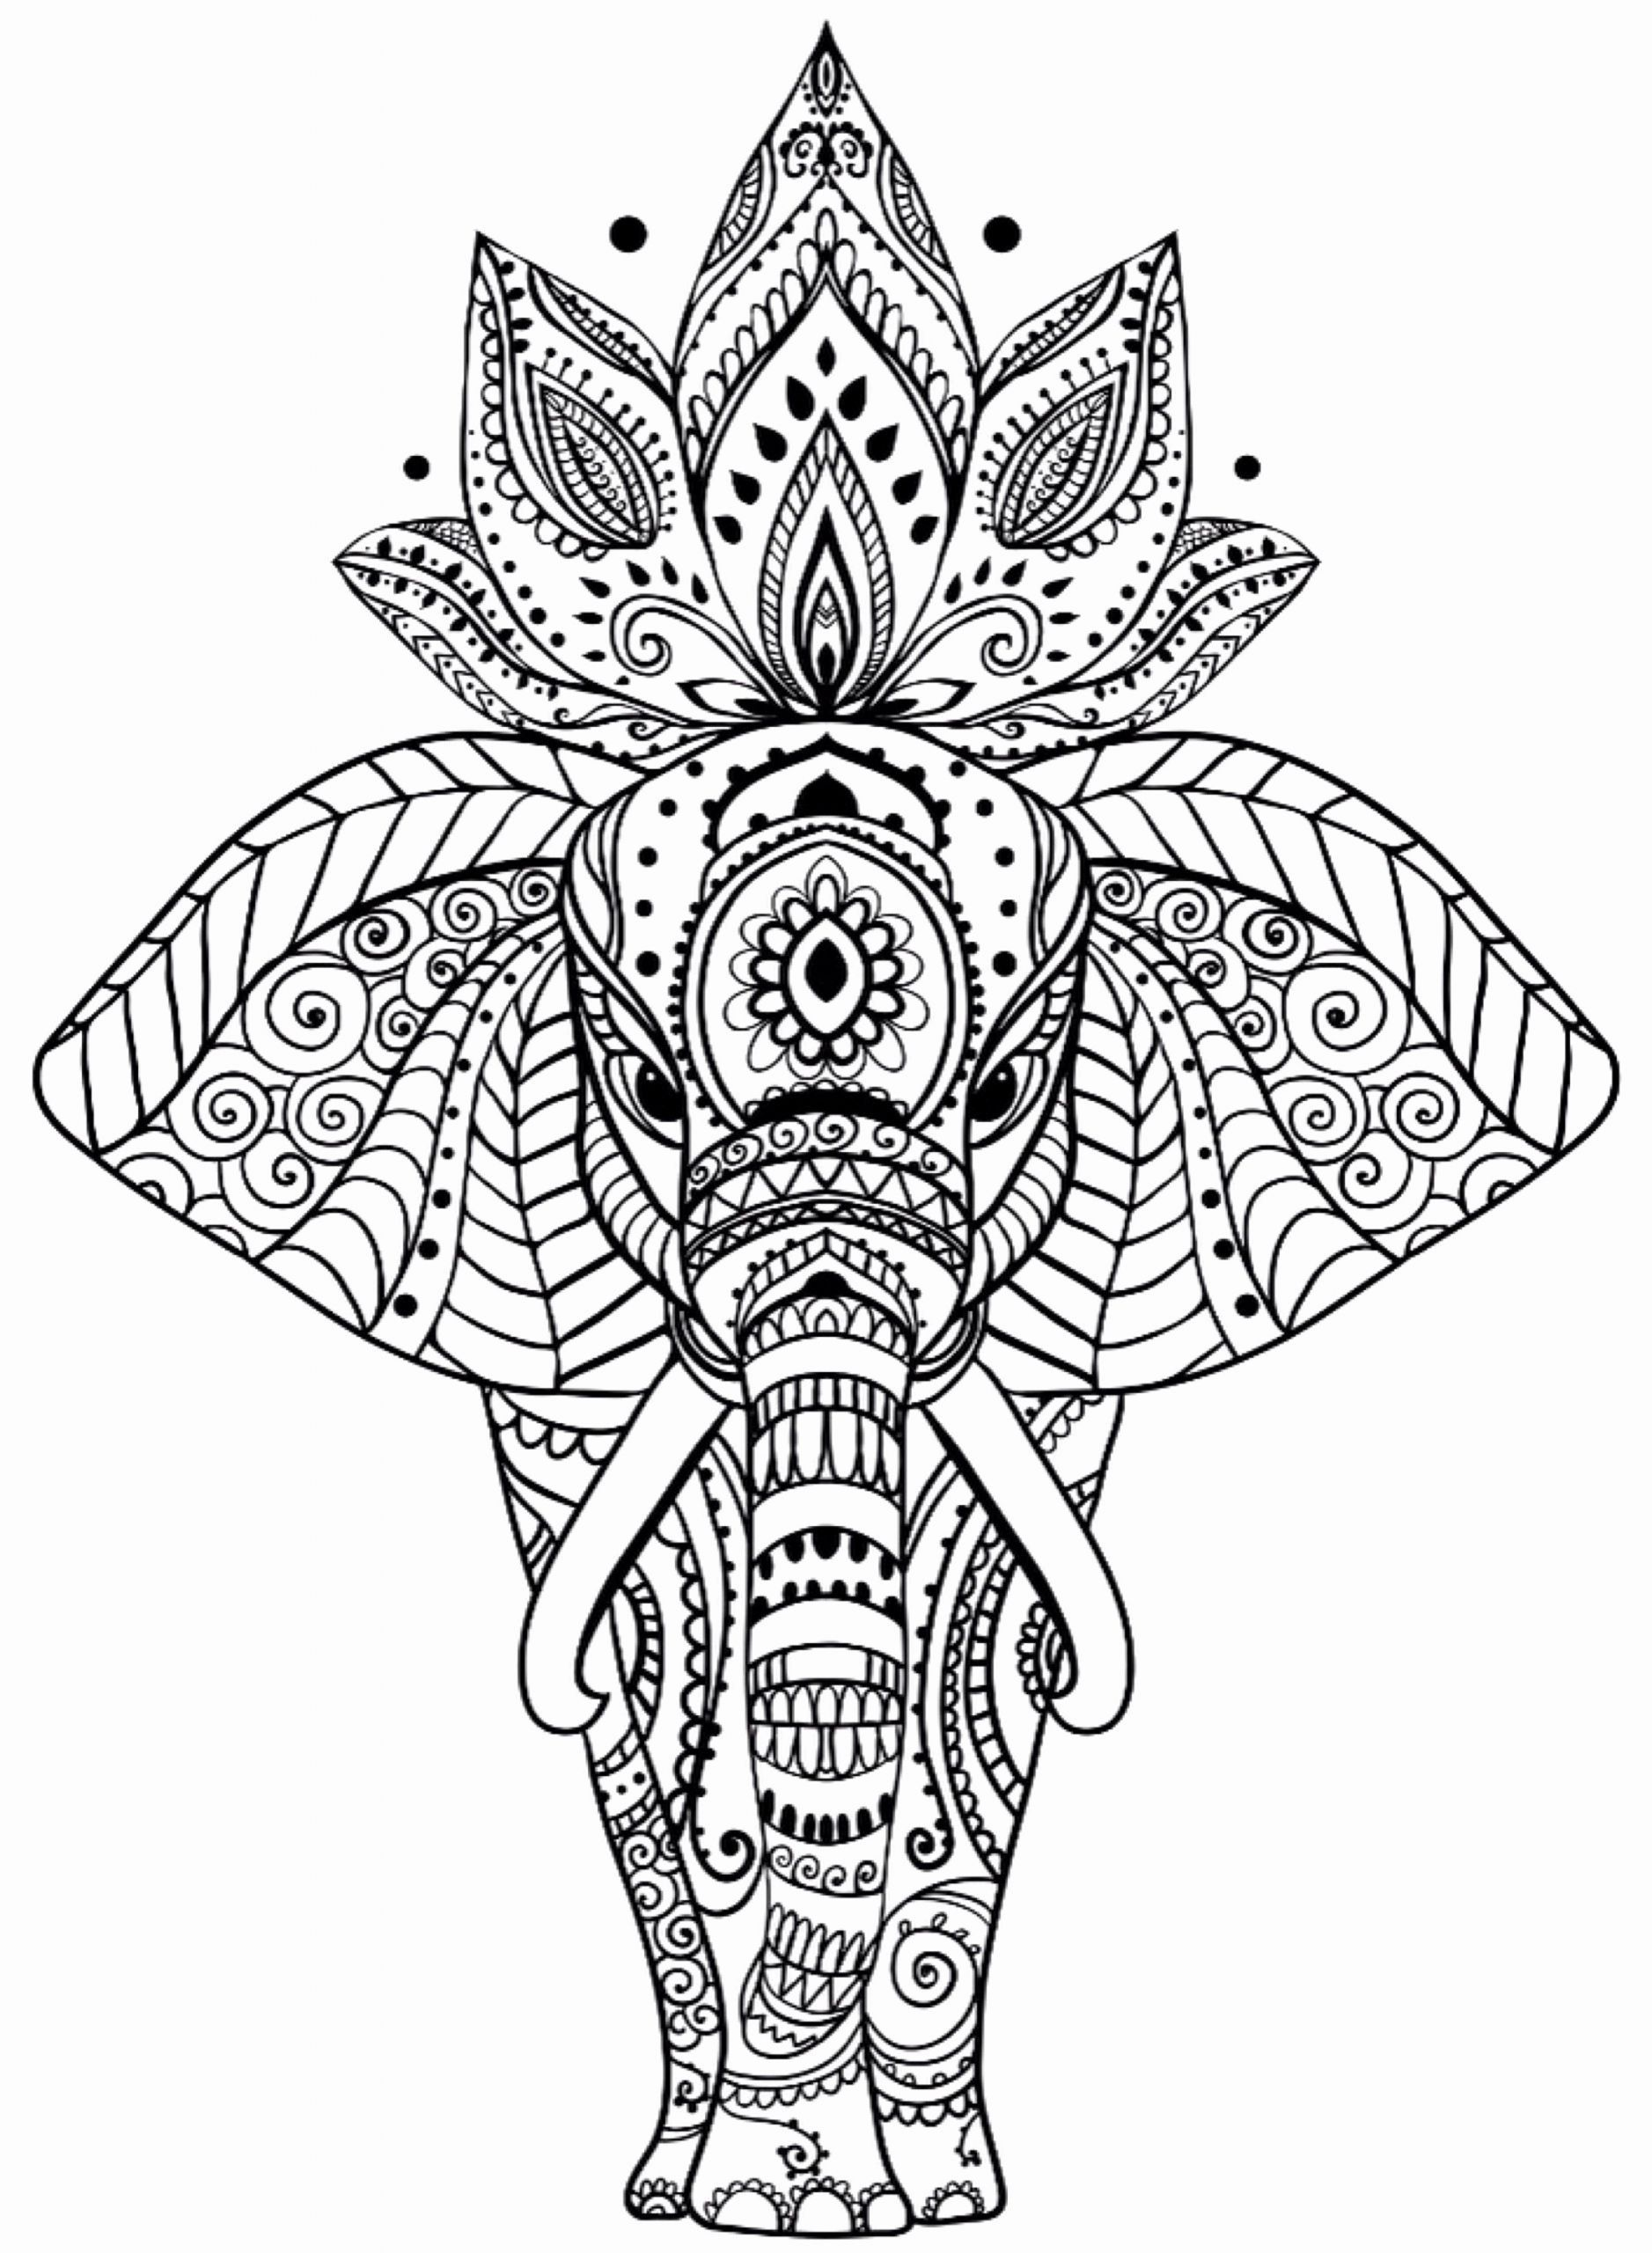 Animal Coloring Pages Pdf By Marko Petkovic Issuu Mandala Coloring Pages Dog Coloring Page Mandala Coloring Books